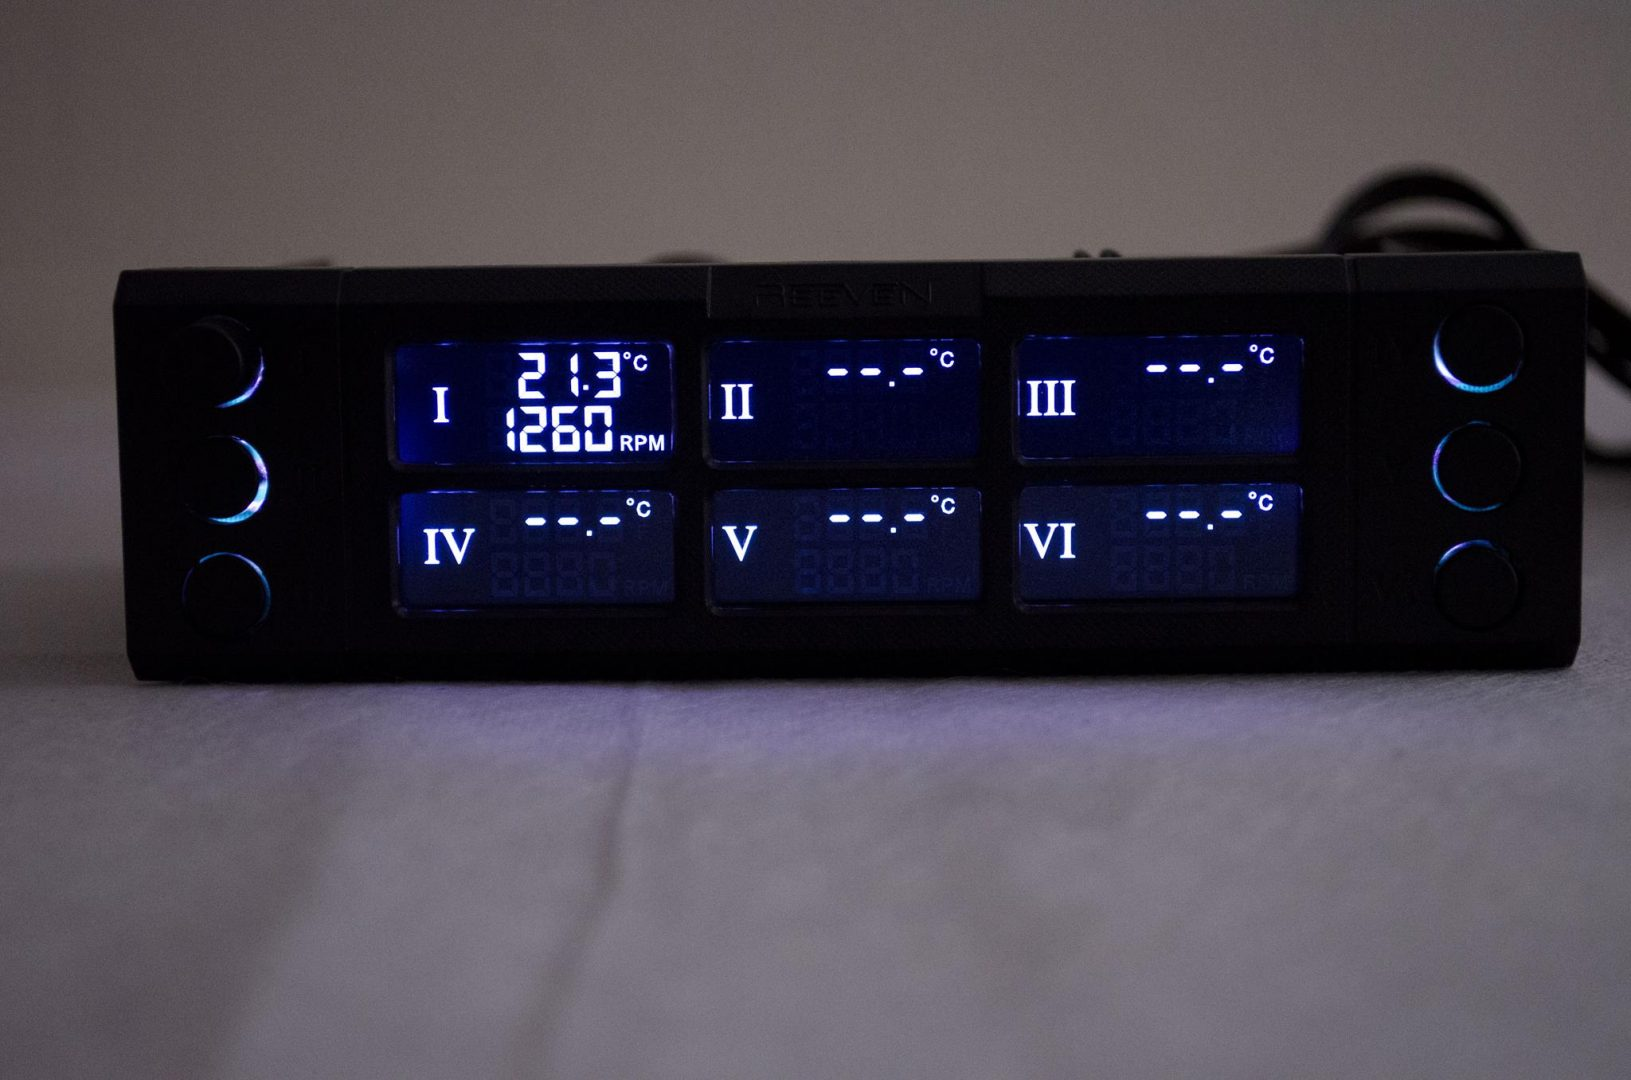 REEVEN SIX EYES TWO Fan Controller Review_7